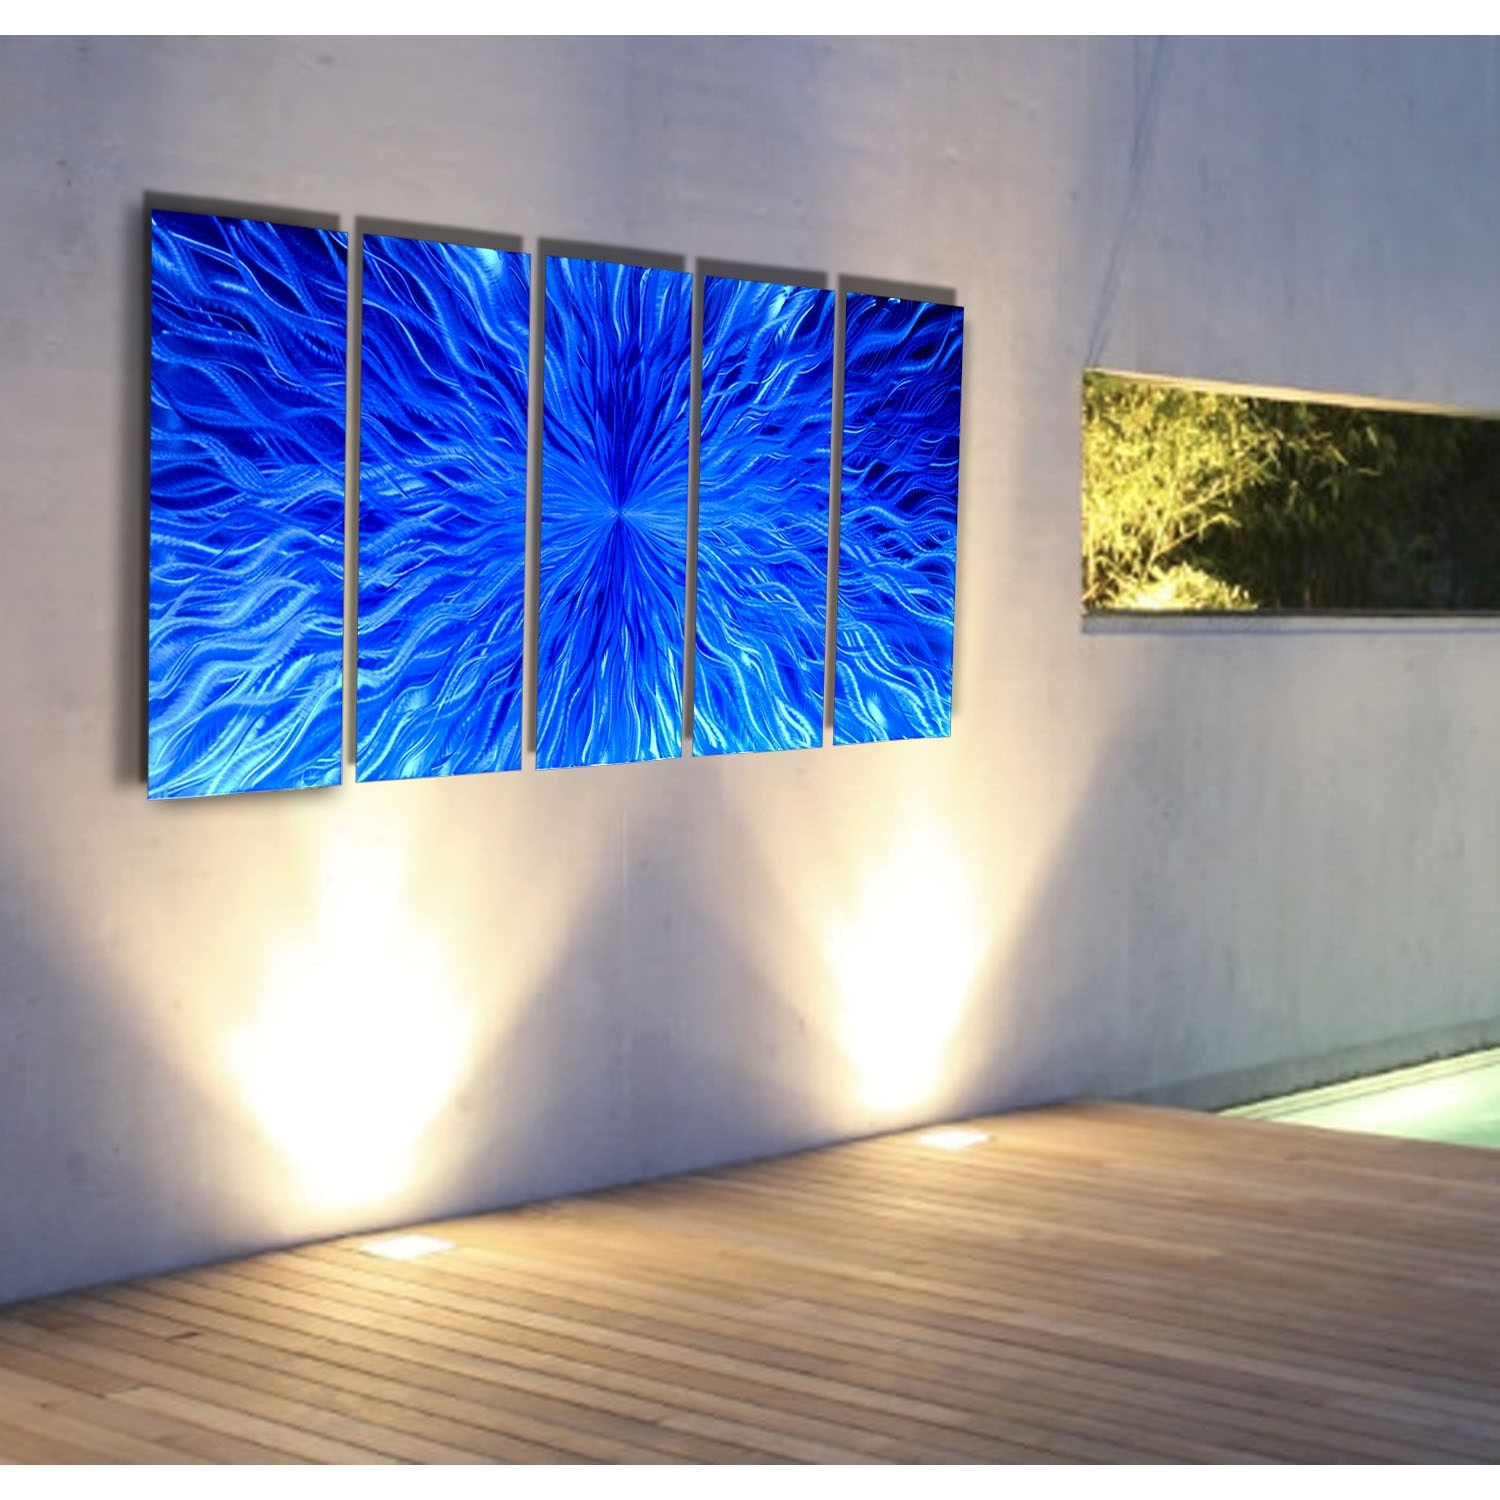 Vitality In Blue – Blue Metal Wall Art – 5 Panel Wall Décorjon Pertaining To Recent Panel Wall Art (Gallery 12 of 20)